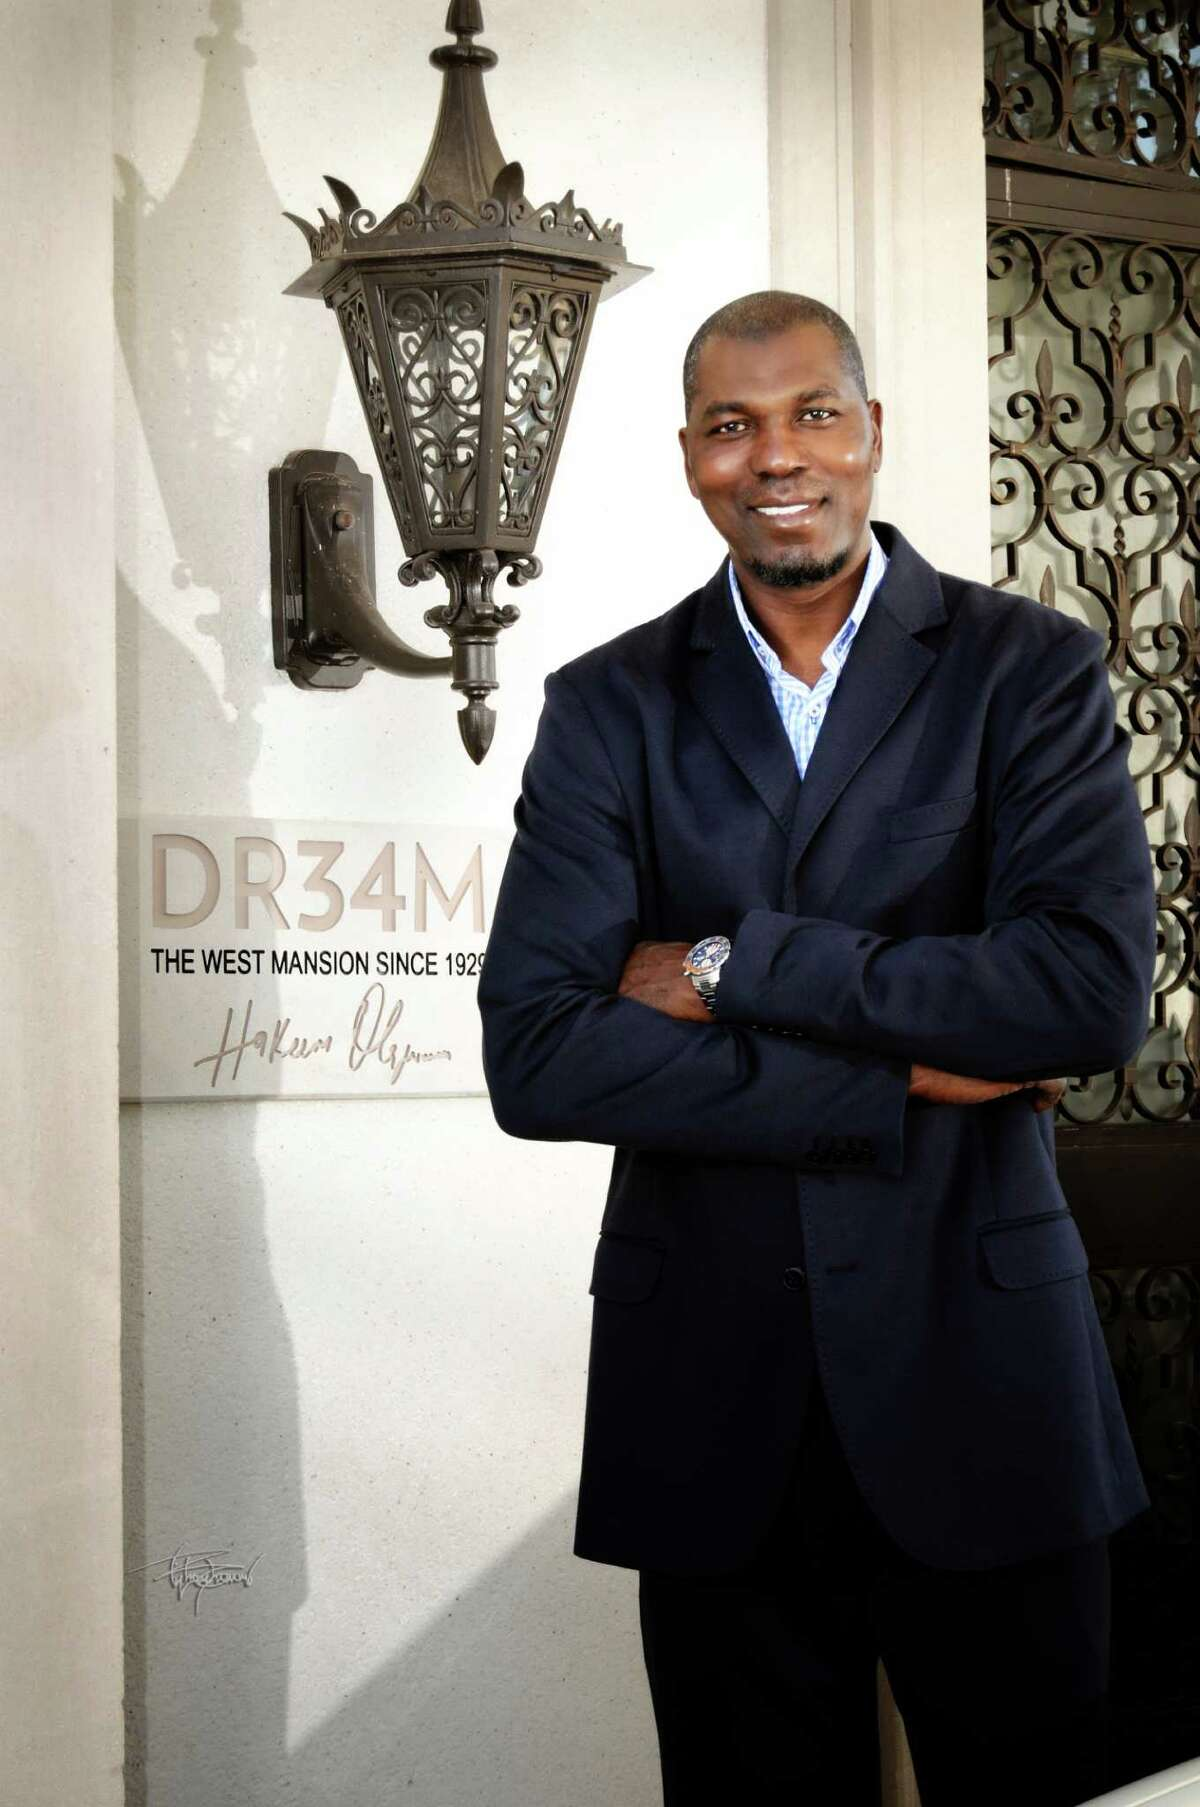 DR34M, Hakeen Olajuwon's new clothing line, is the latest resident of Clear Lake's West mansion.